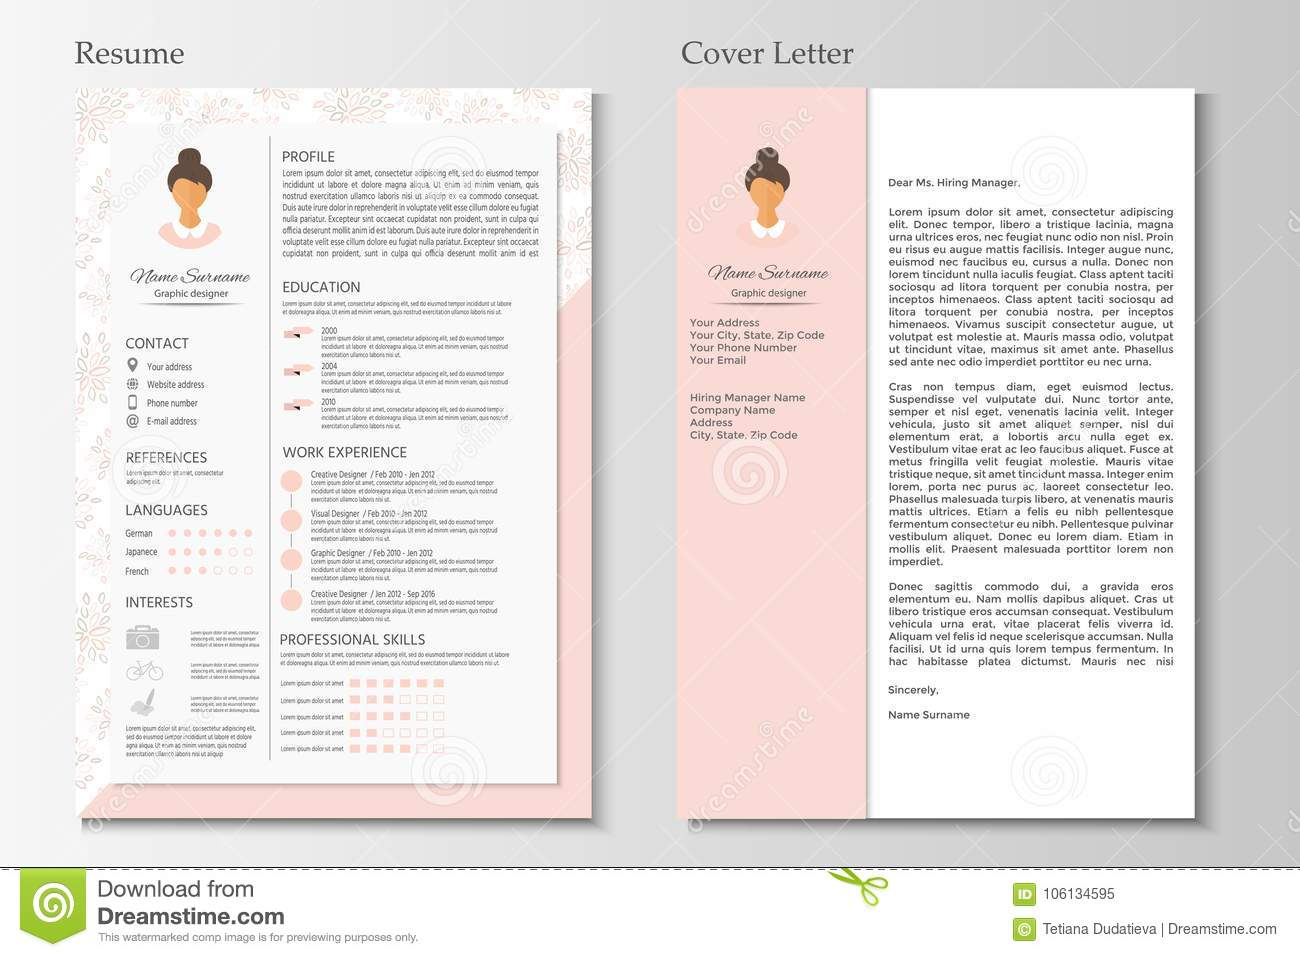 Feminine Resume And Cover Letter With Infographic Design